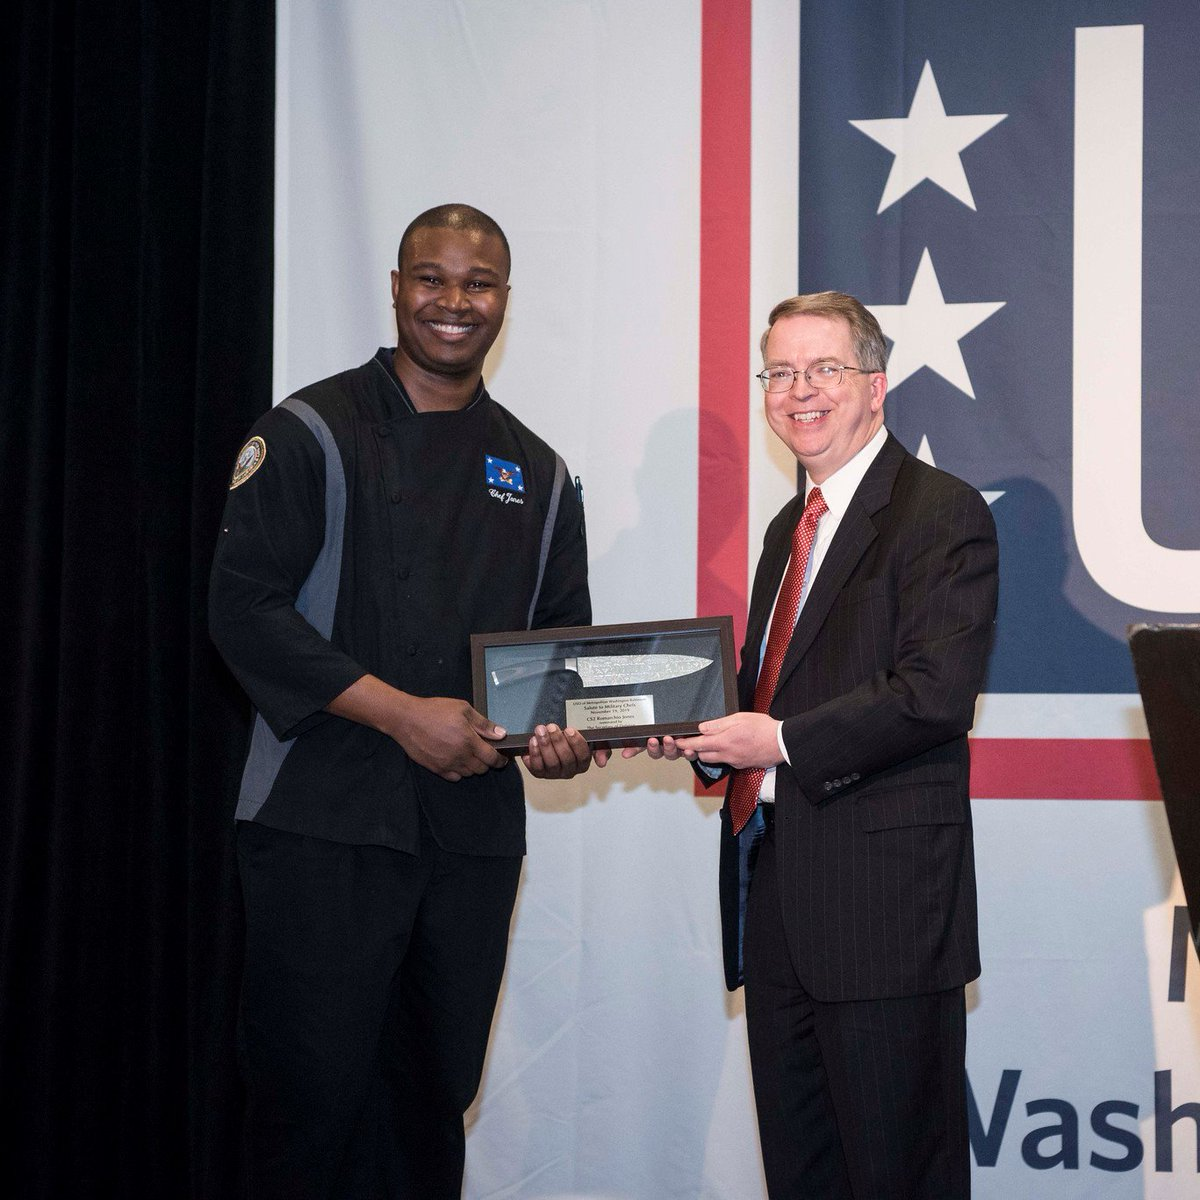 It was an honor to introduce Culinary Specialist Second Class Petty Officer Romarchio Jones (Secretary of Defense Mess) at the 22nd annual @USOMetroDC Salute to Military Chefs. PO2 Jones showcased his culinary talents along with other select military chefs during the event.